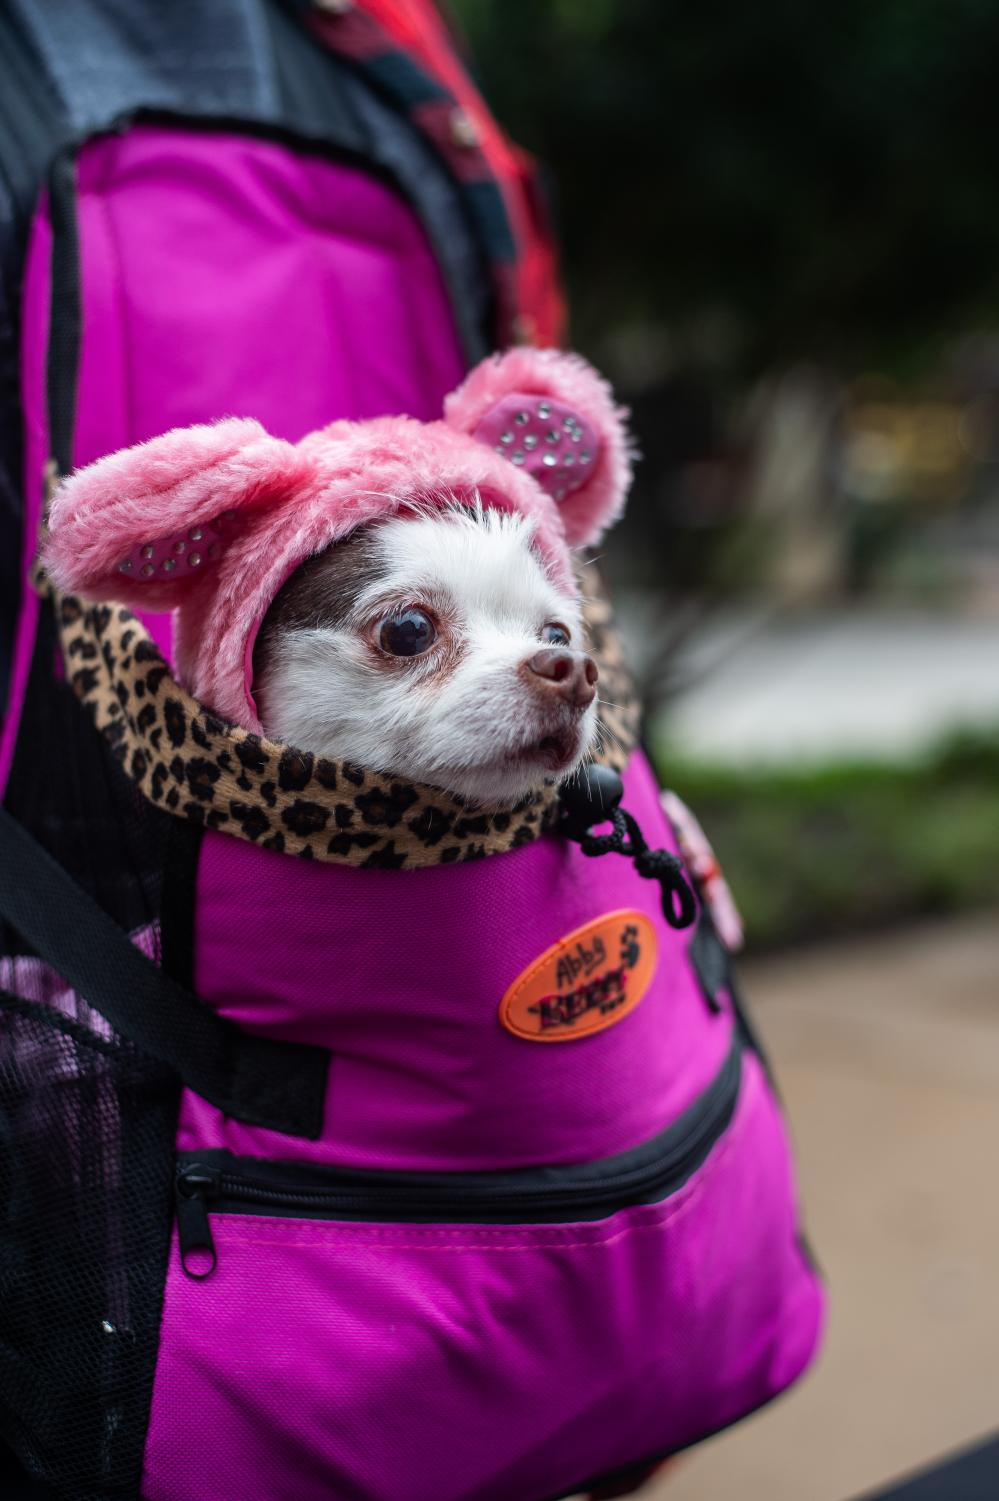 Abby%2C+a+chihuahua+stays+warm+in+a+backpack+while+dressed+as+a+pink+bear.++%22%5BIt%27s%5D+too+cold+to+be+outside+for+her%2C%22+her+owner+said.